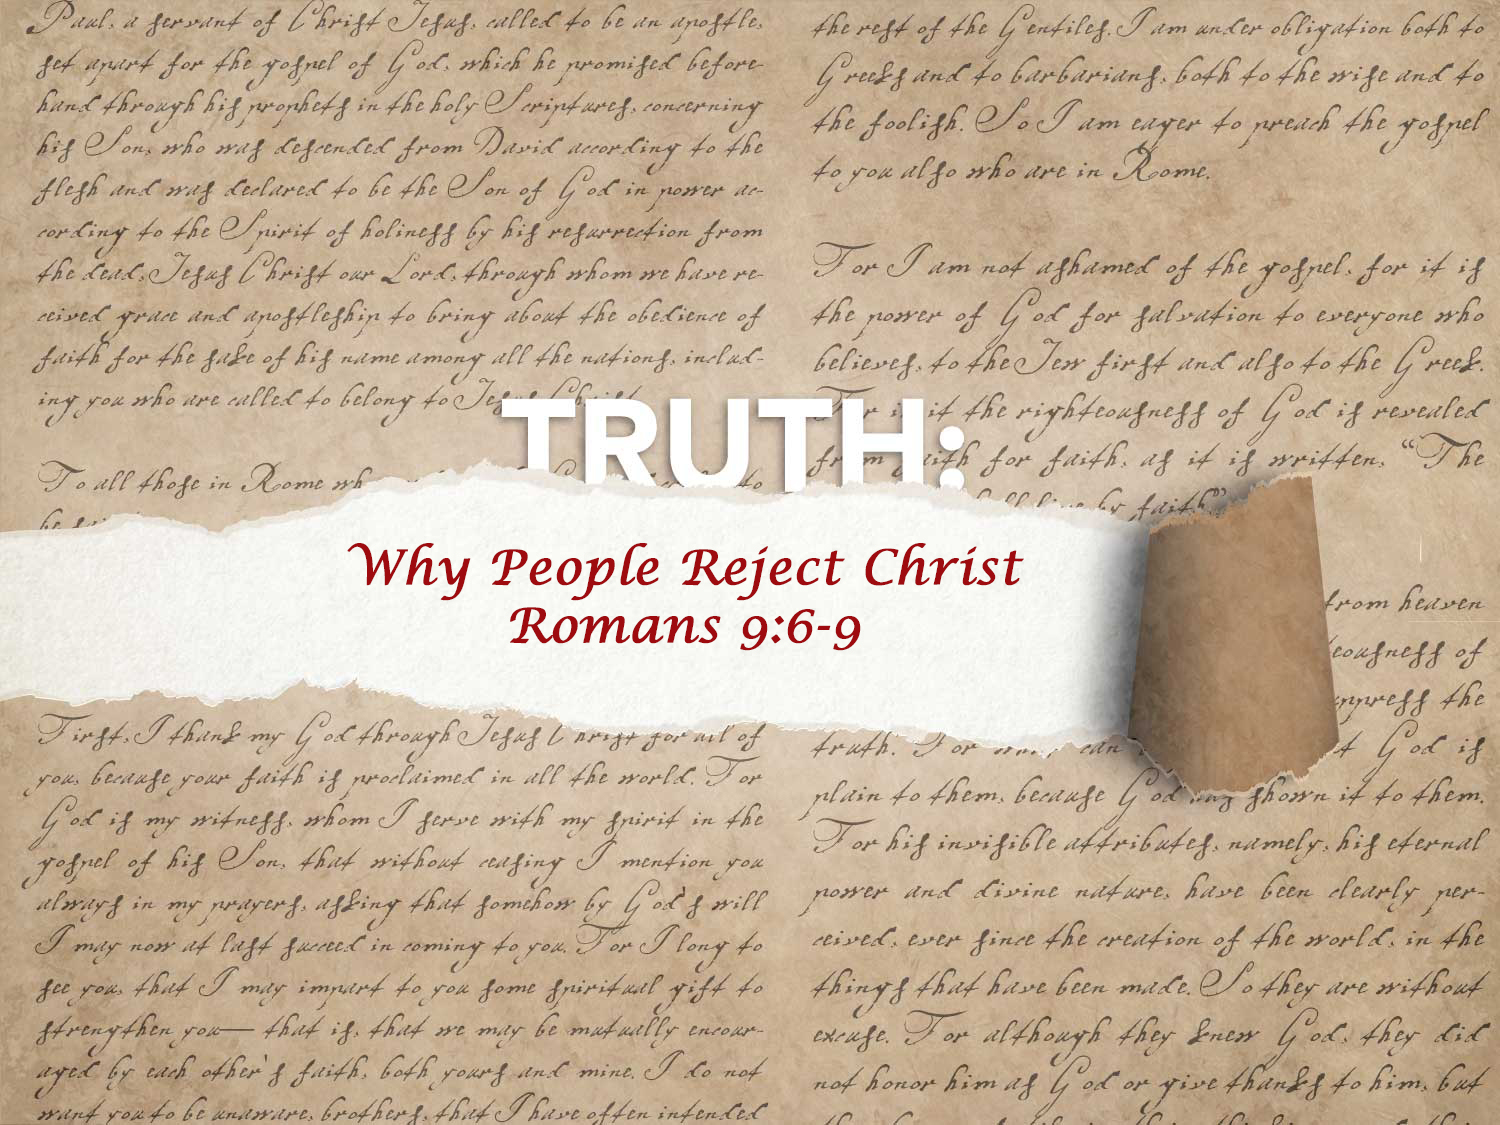 Romans 9:6-9 Why People Reject Christ